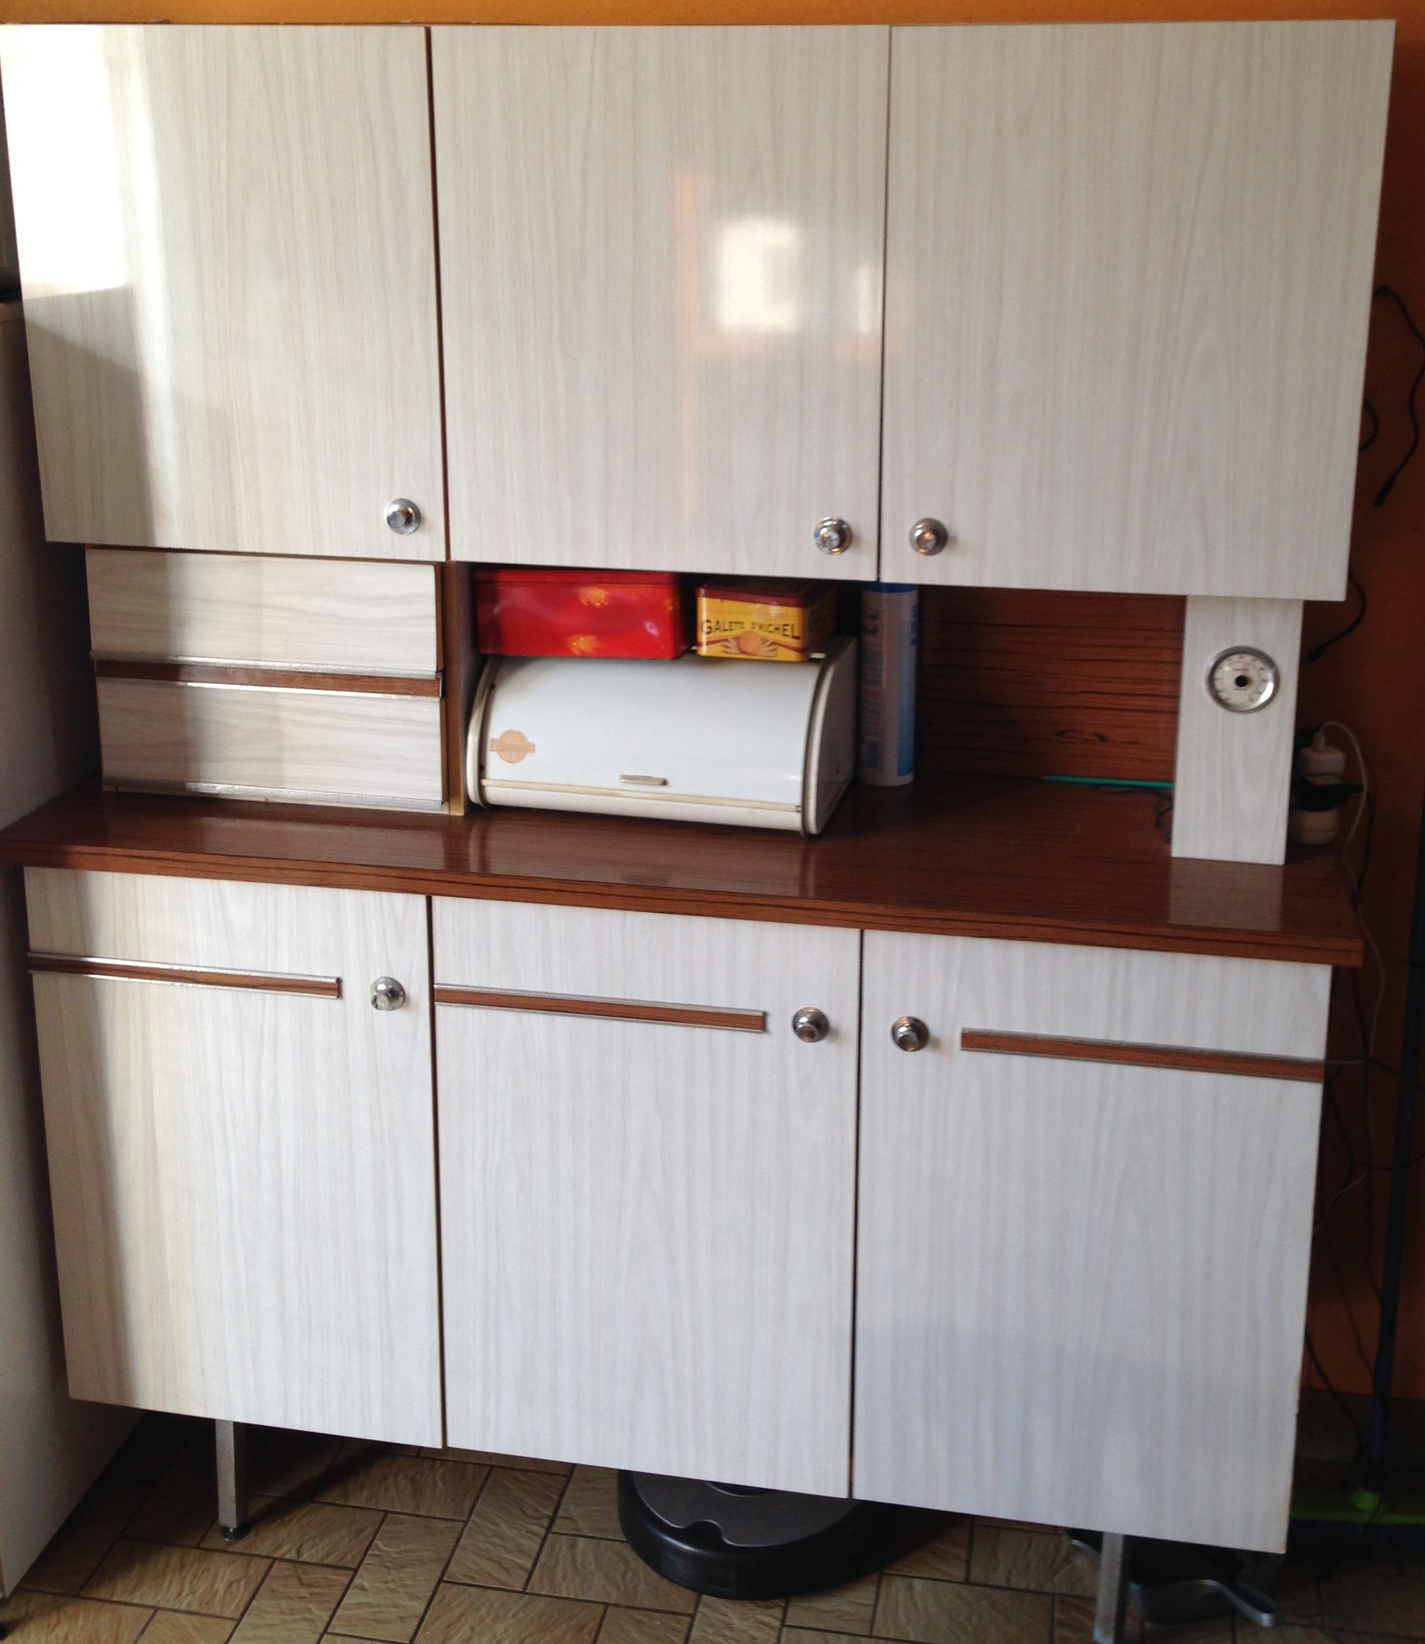 Le formica c tait formidable et made in france de - Buffet cuisine formica ...